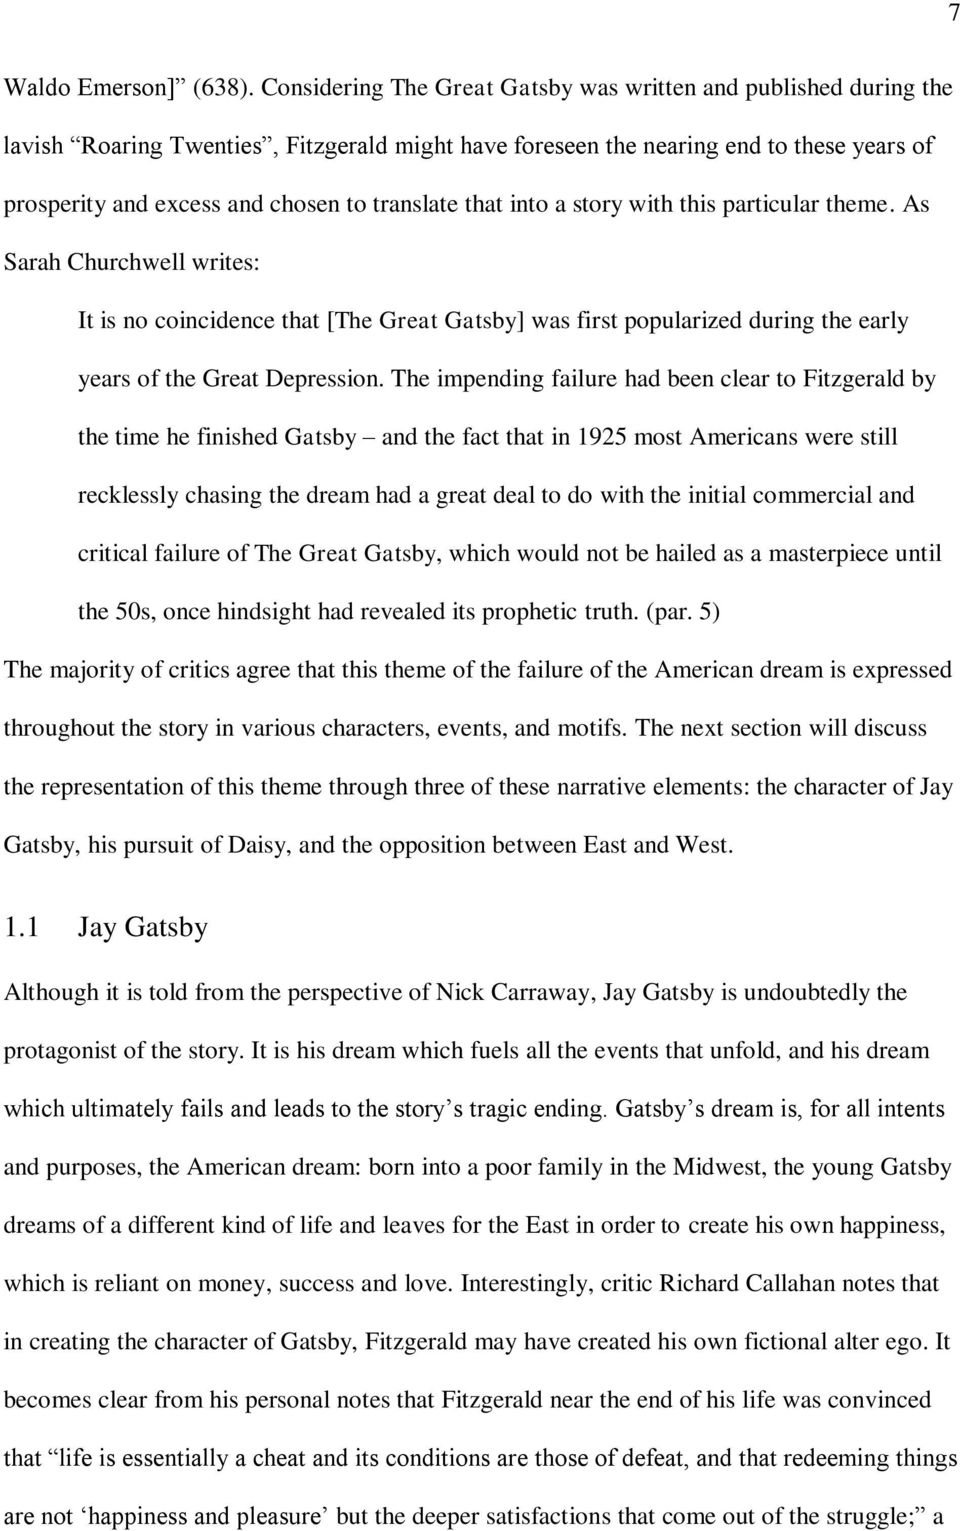 Adaptations Of The Great Gatsby Pdf